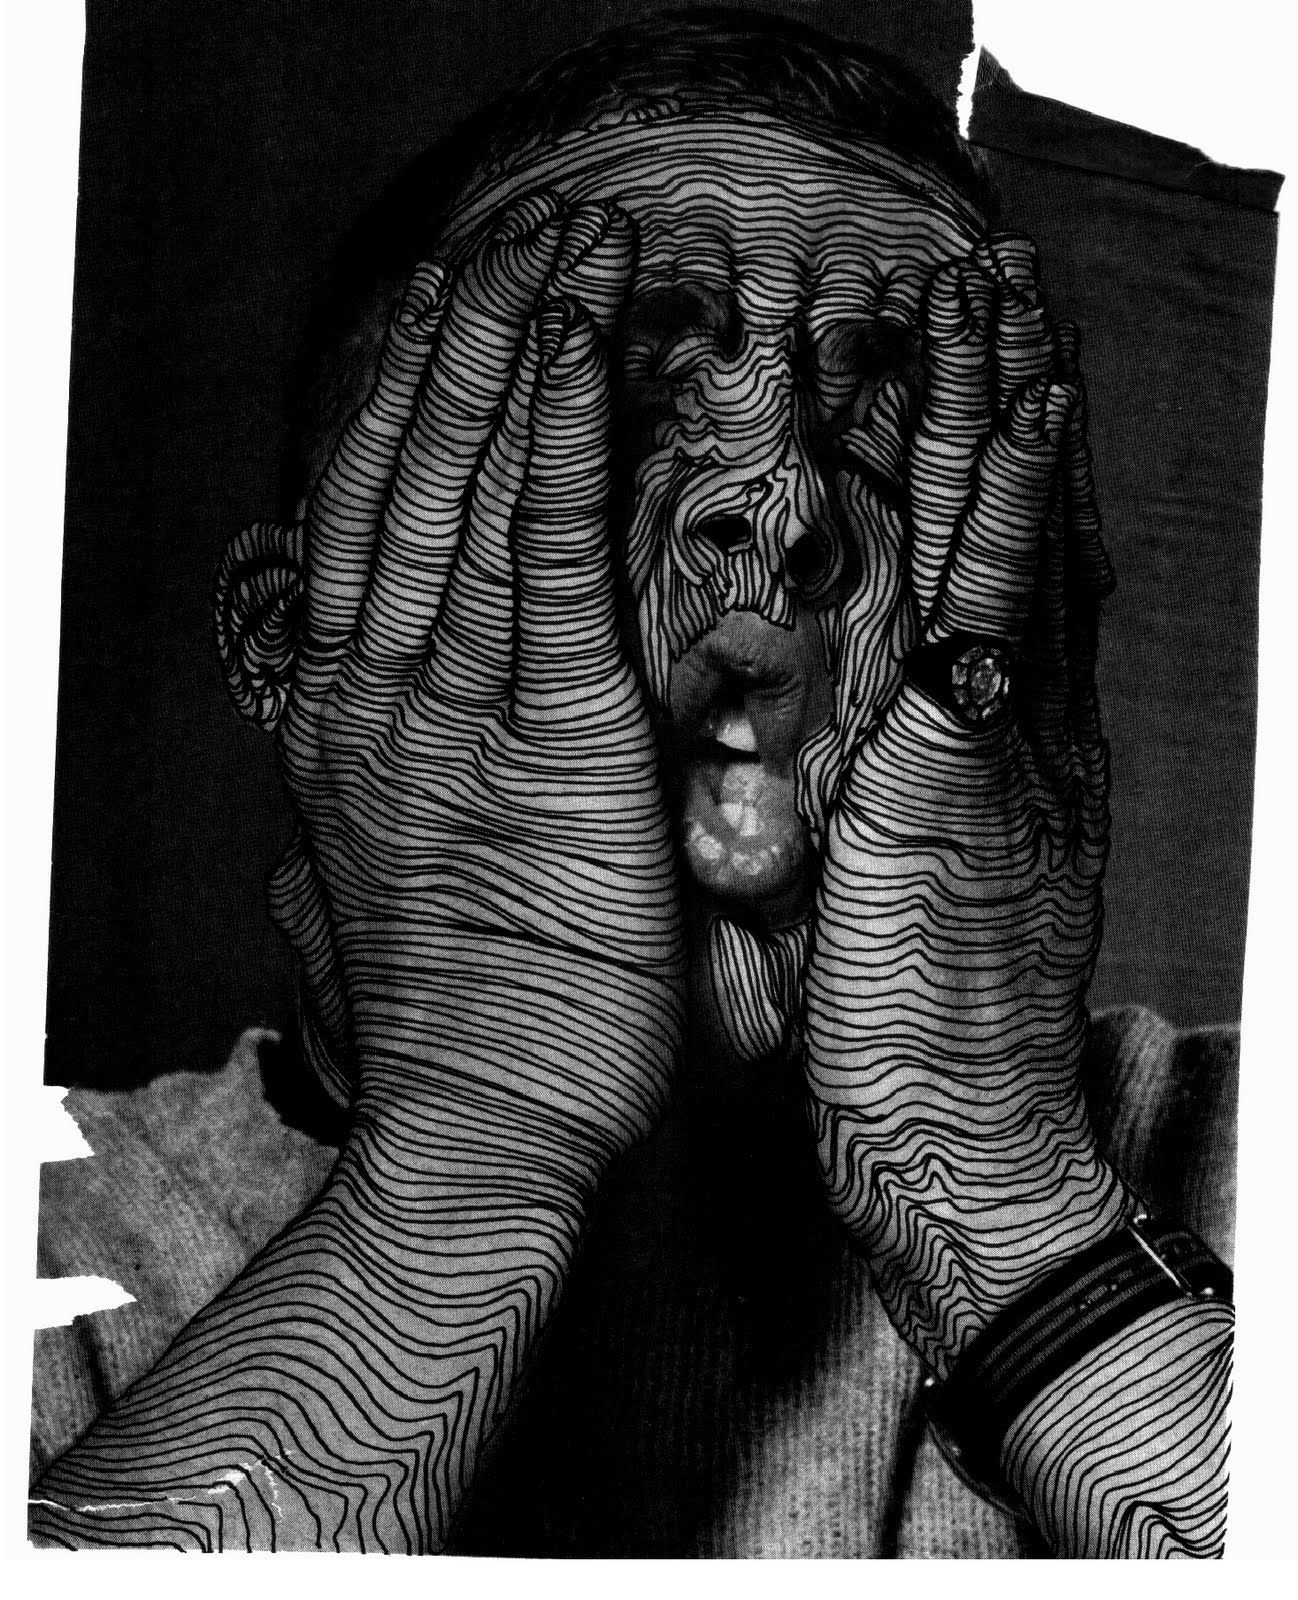 Drawing on photos cross contours use silver pen on black paper or maybe scratchboard high school art drawing lesson